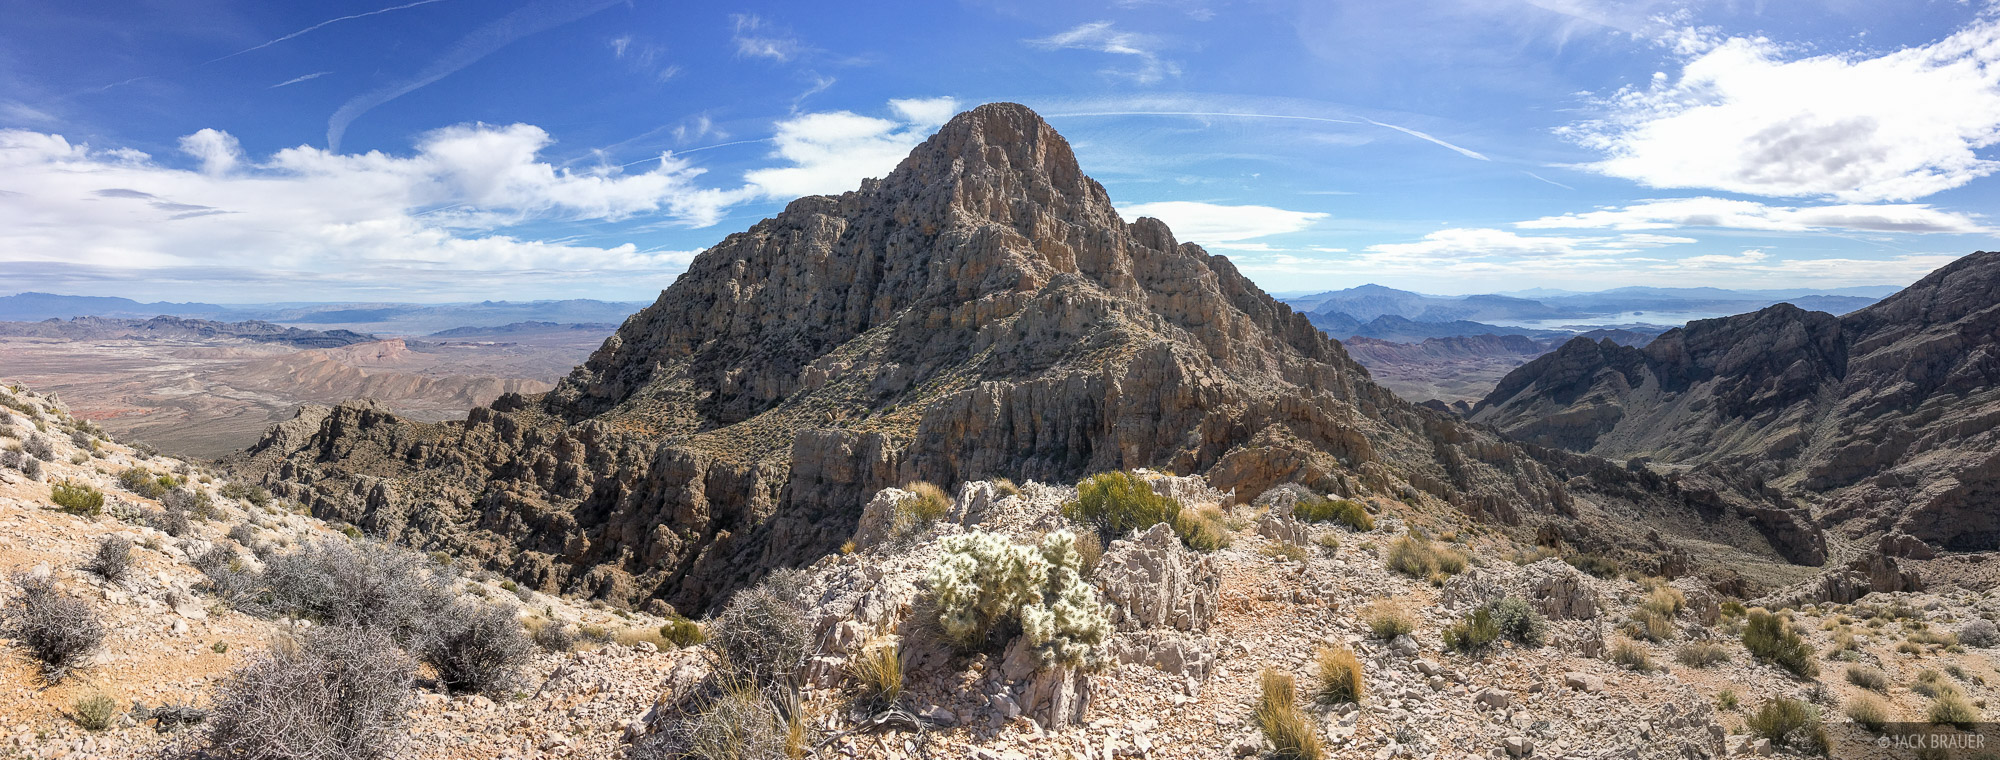 The summit block of Muddy Peak with Lake Mead in the distance.